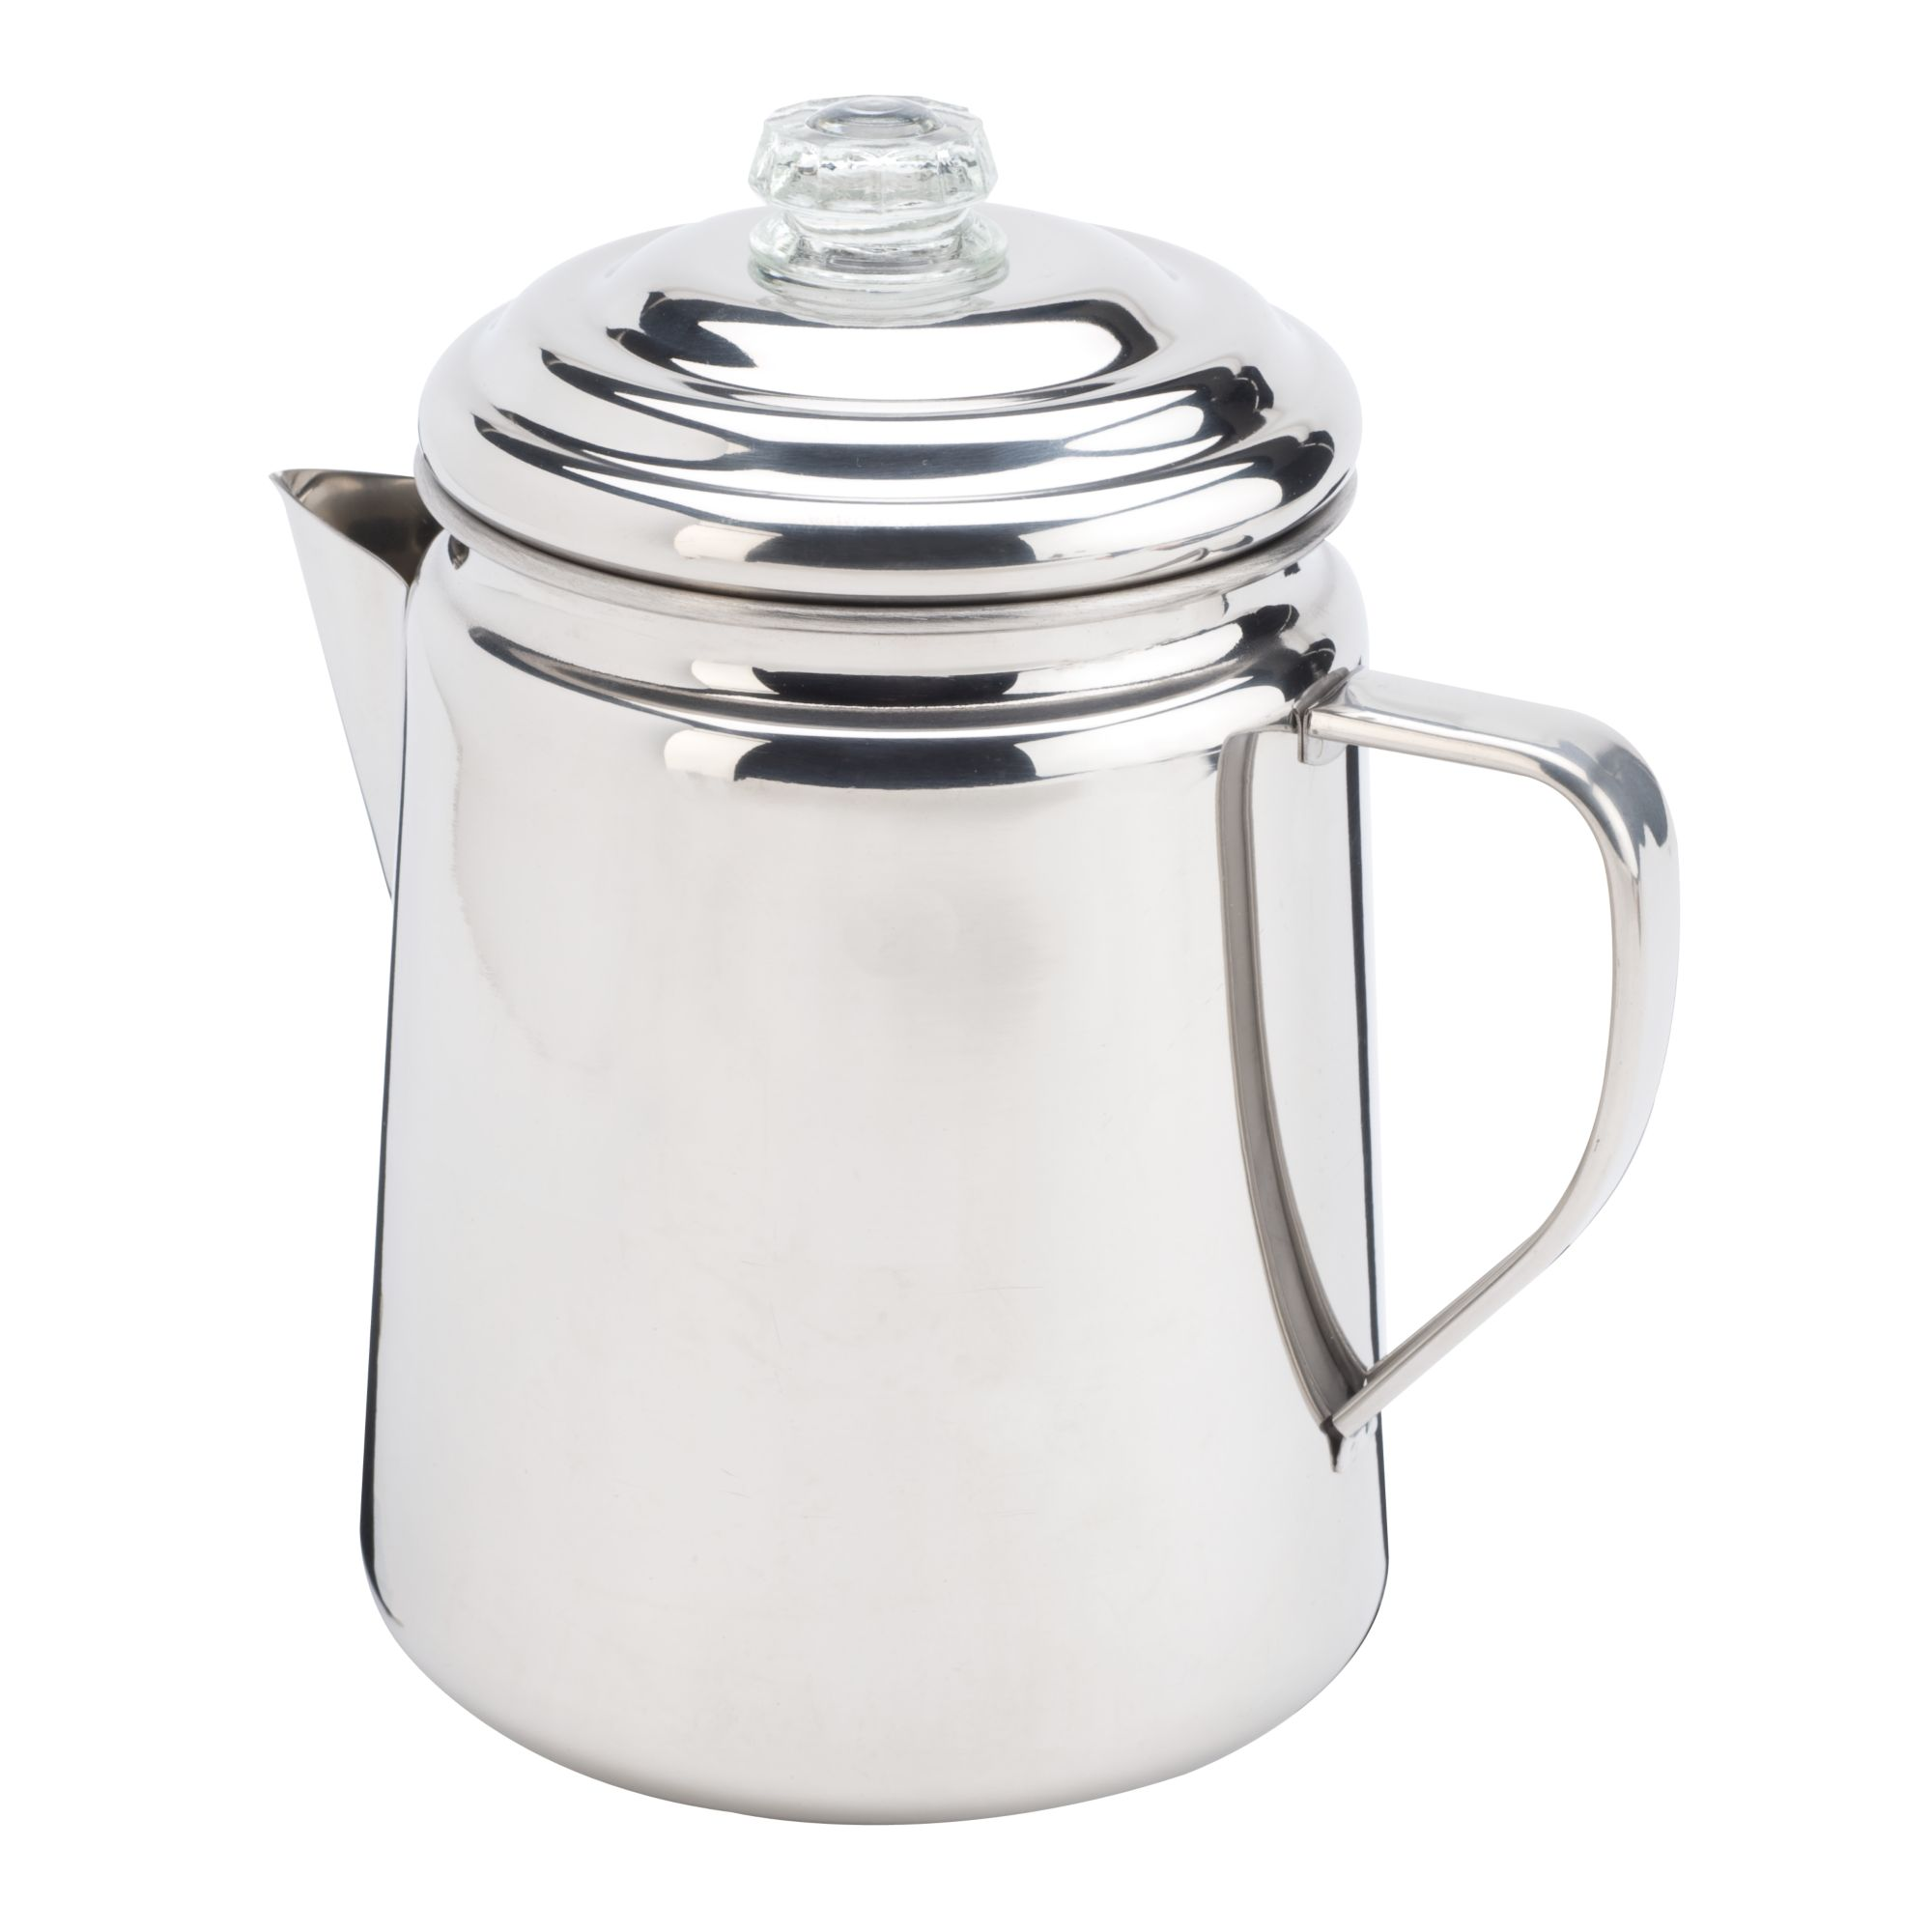 12 Cup Stainless Steel Percolator